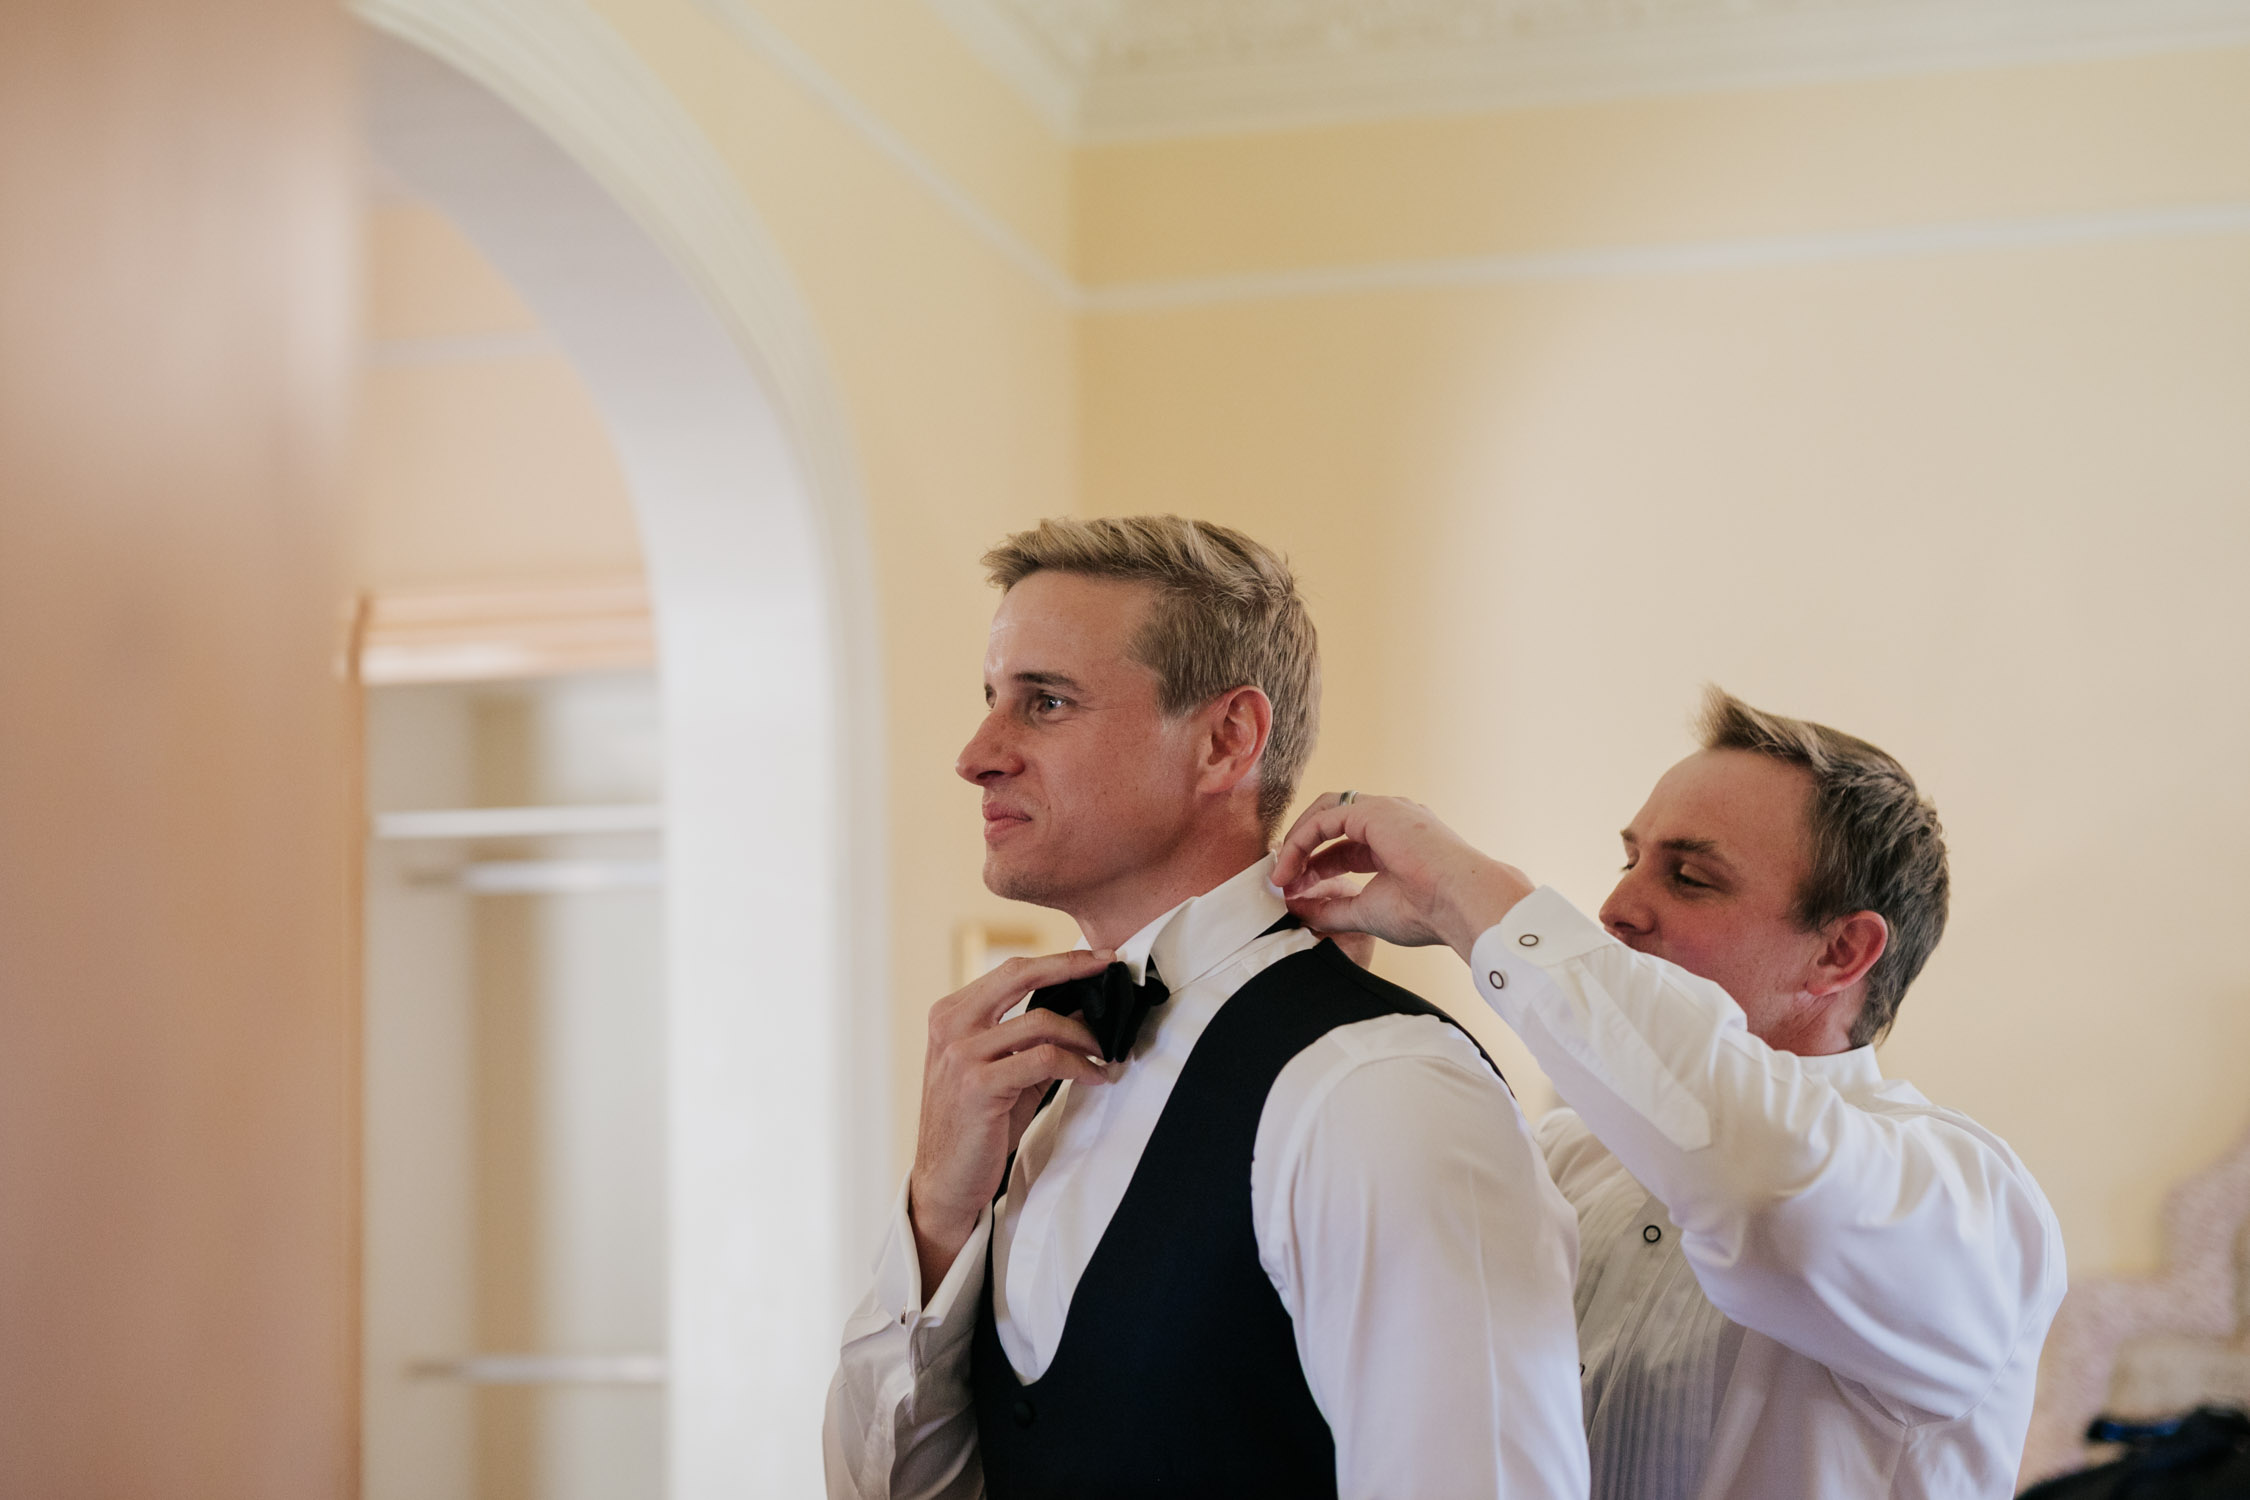 Groomsman helping the groom get ready. Groom's outfit is black tie and a black waistcoat with a white shirt.